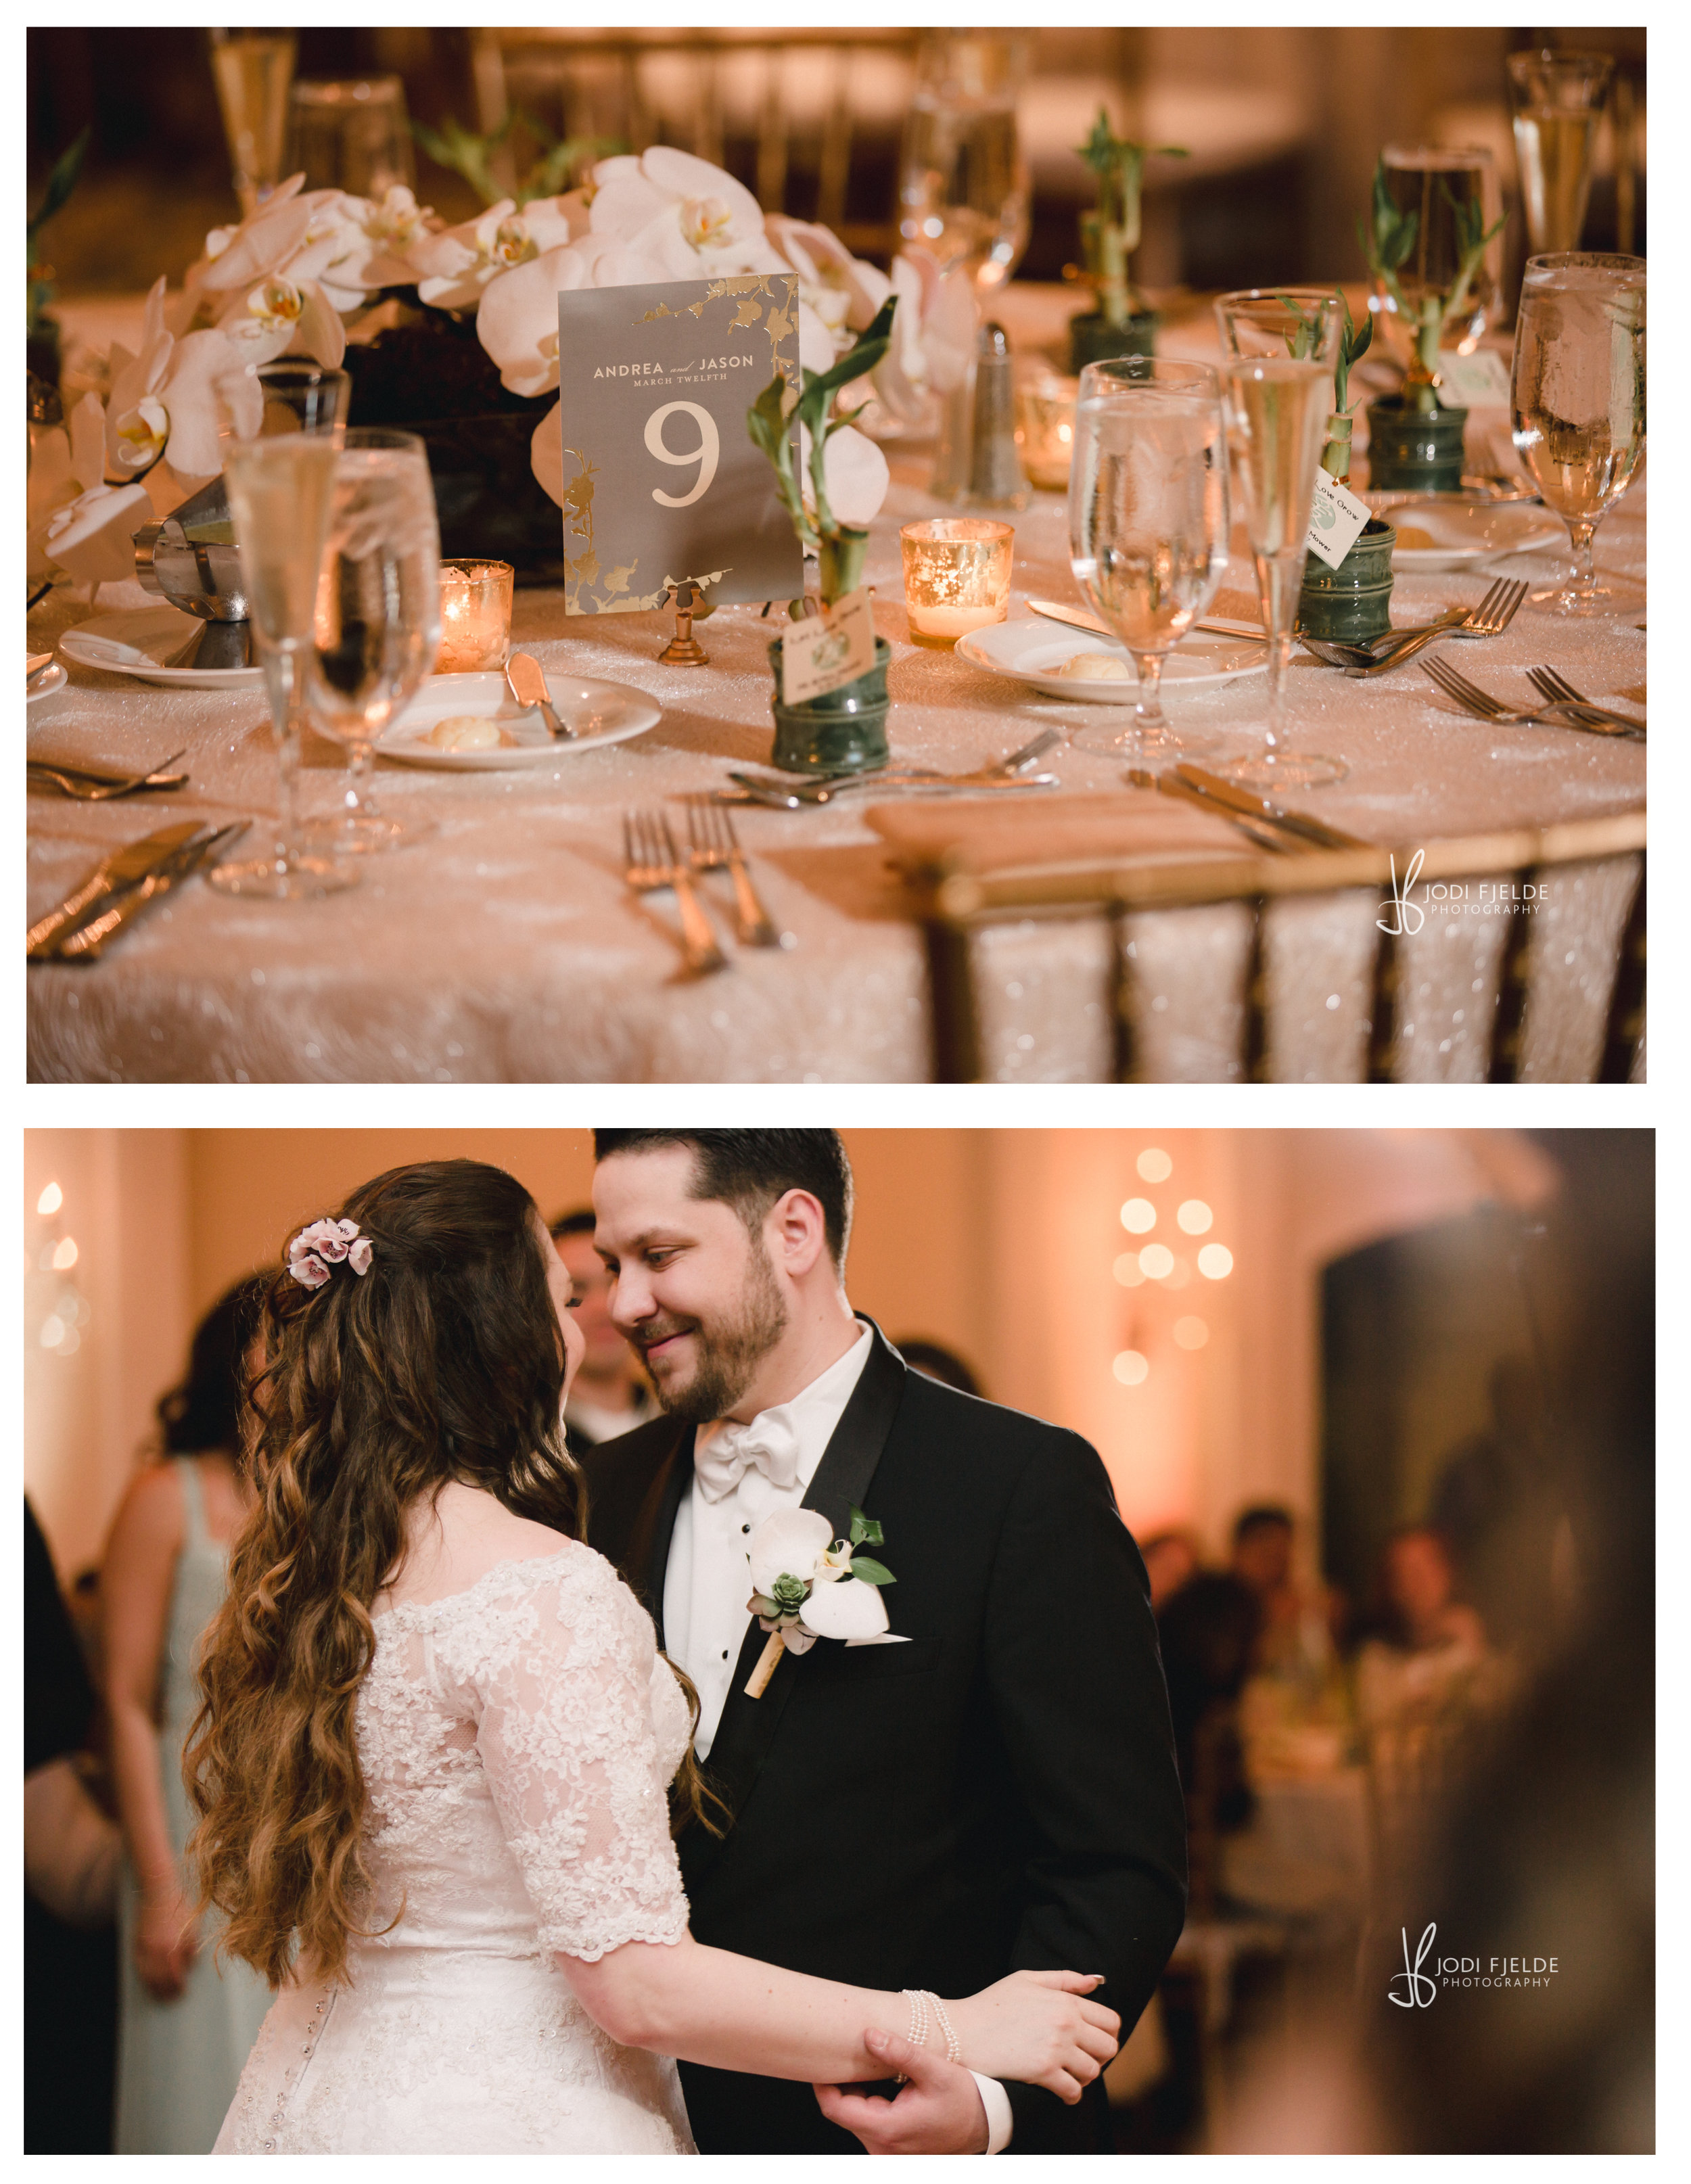 Deer_Creek_Country_Club_Wedding_Jodi_Fjelde_Photography_Andrea_Jason_16.jpg